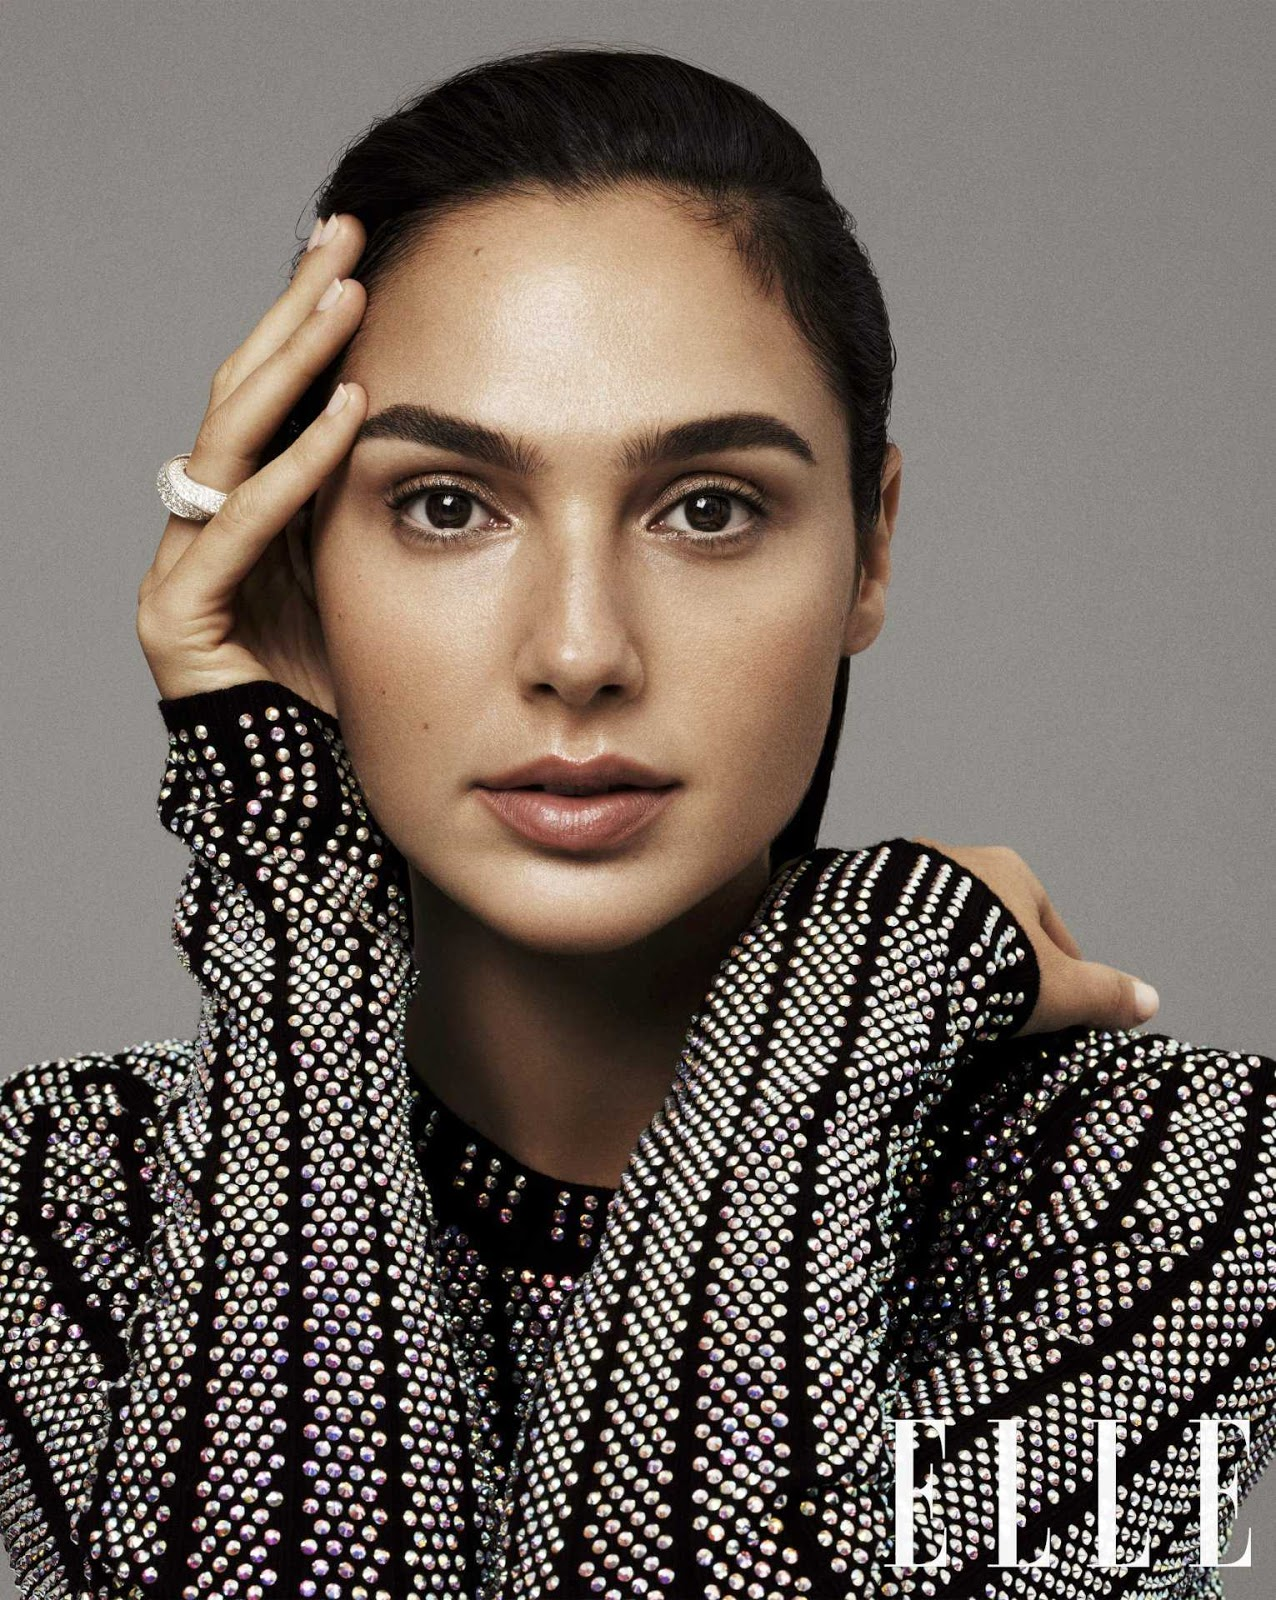 Gal Gadot in Elle Magazine Photoshoot December 2017